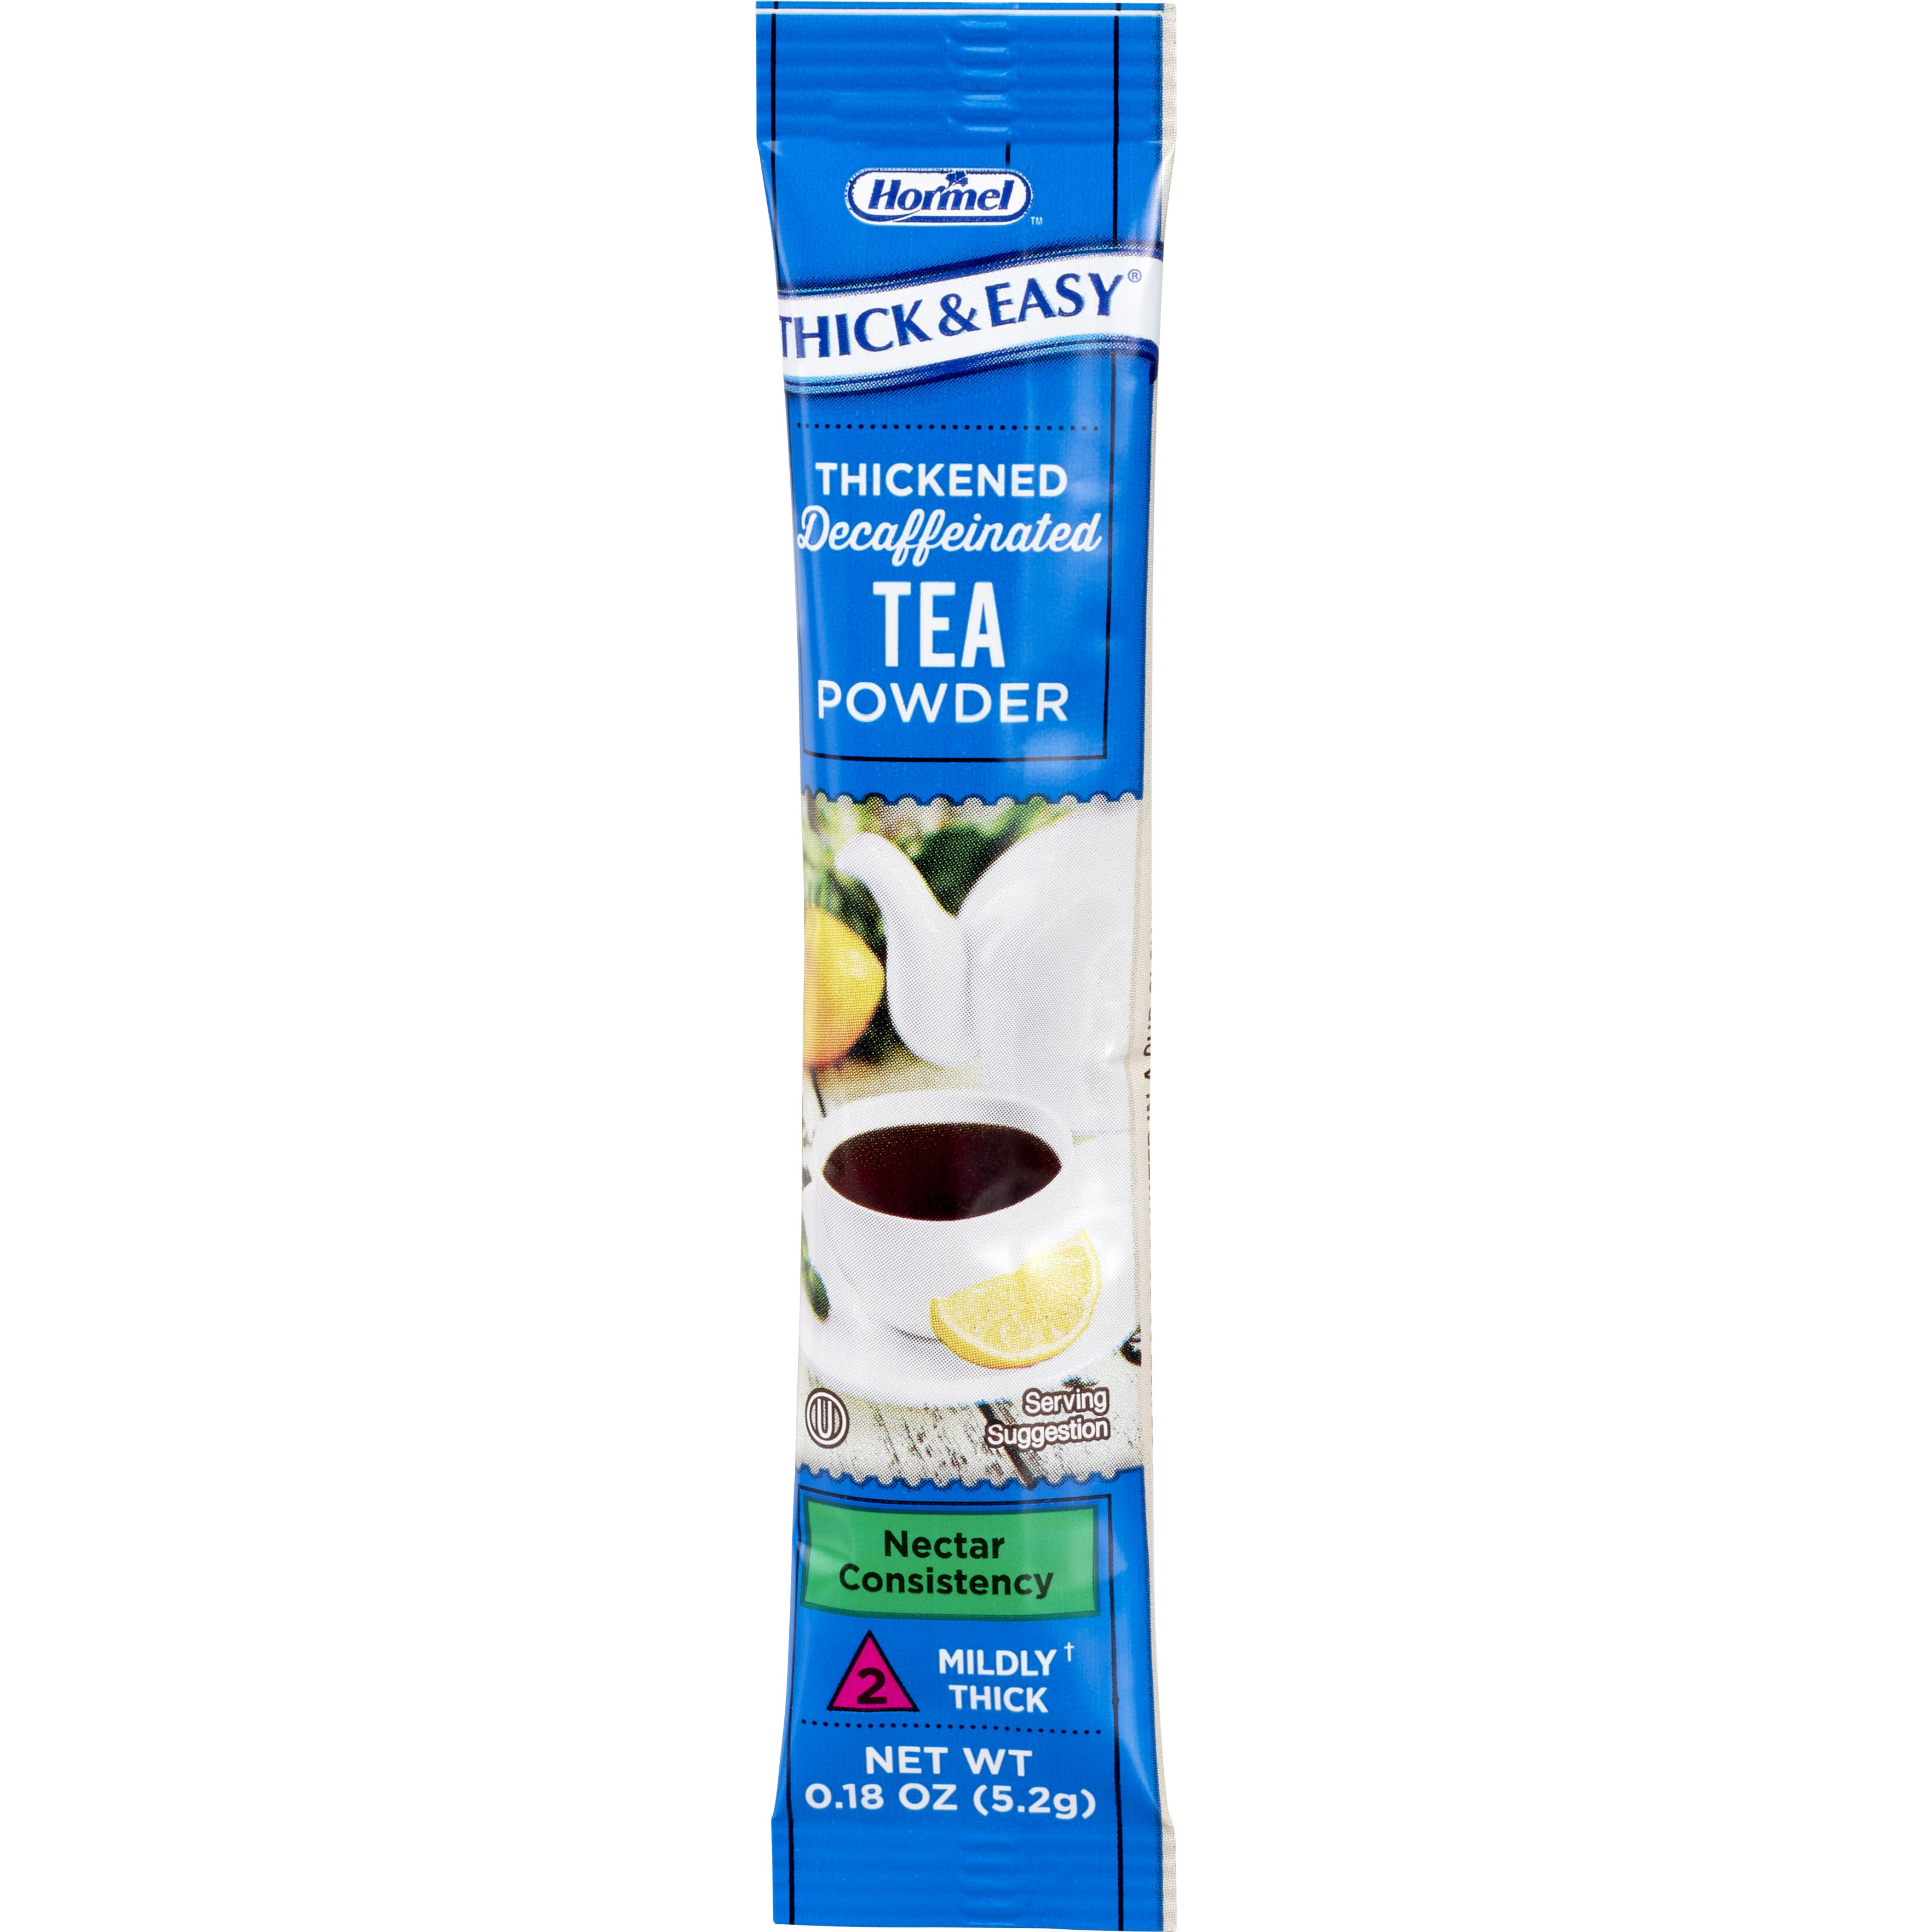 Thick & Easy Decaffeinated Tea Nectar Consistency Thickened Beverage, 0.18 oz. Packet of Powder, 81330, Case of 72